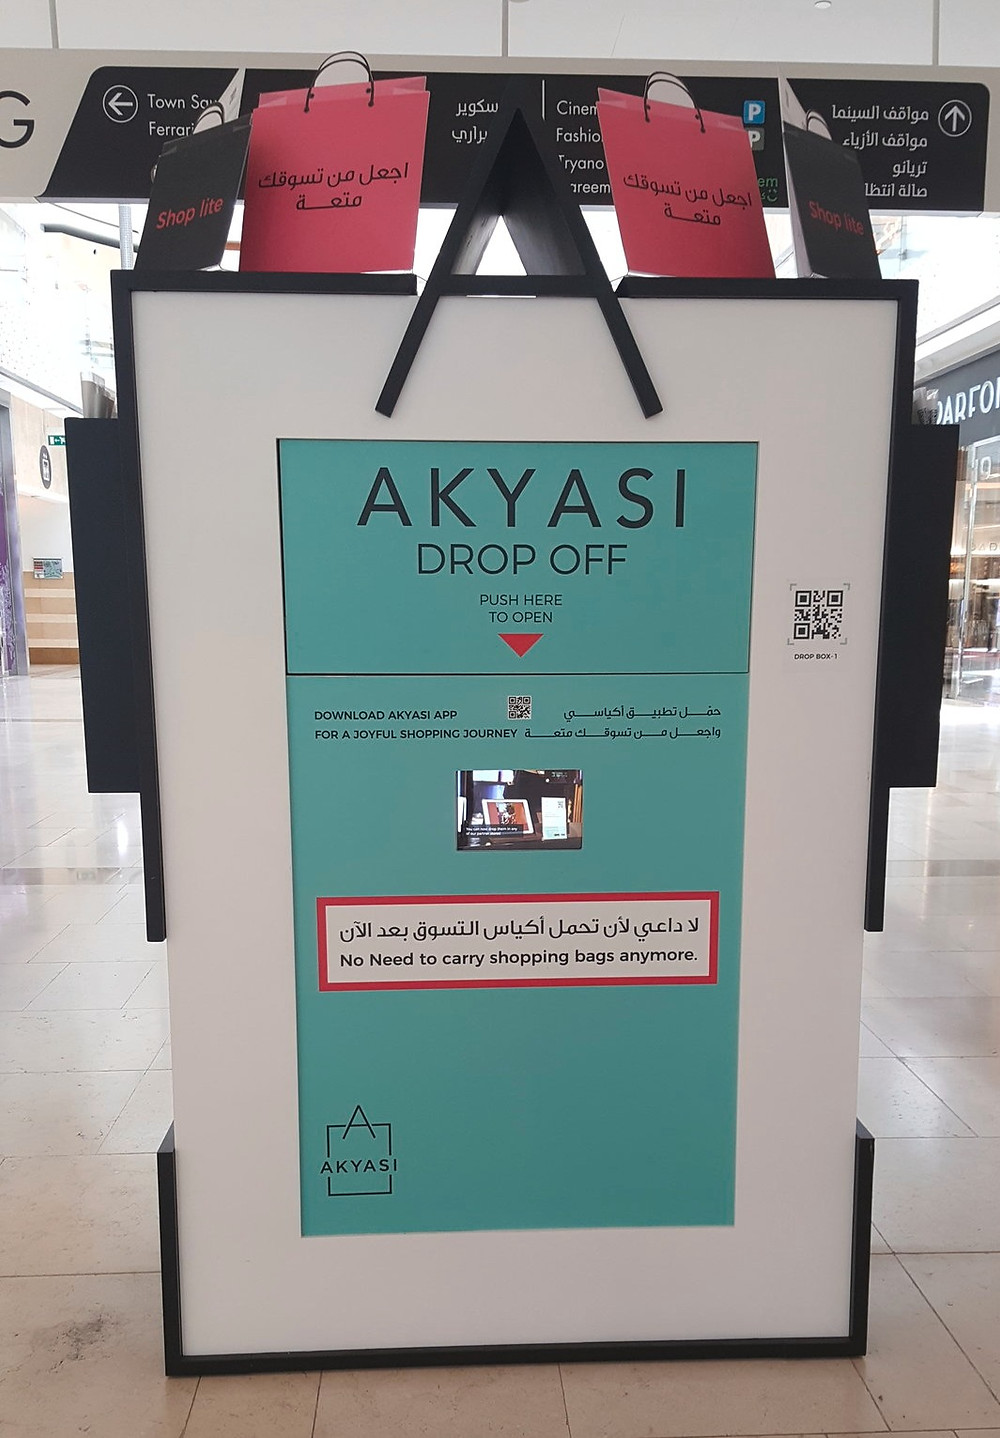 Shopping drop off point at Yas Mall in Abu Dhabi